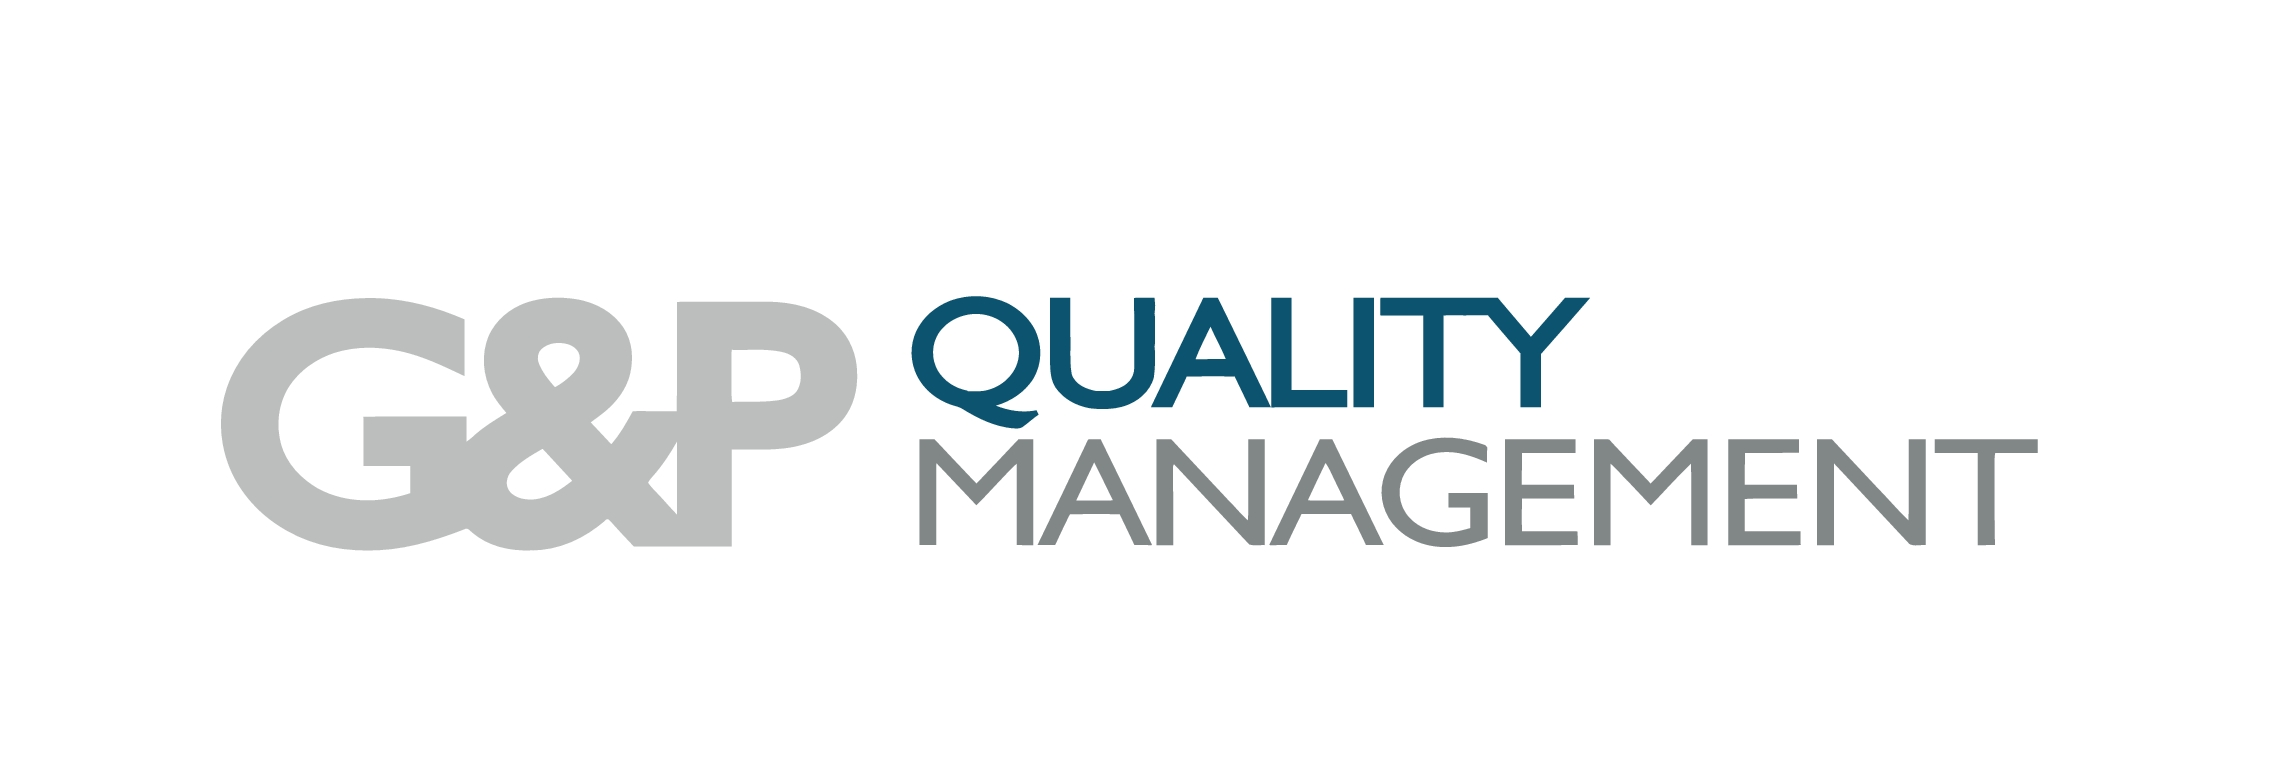 Goud G&P Quality Management